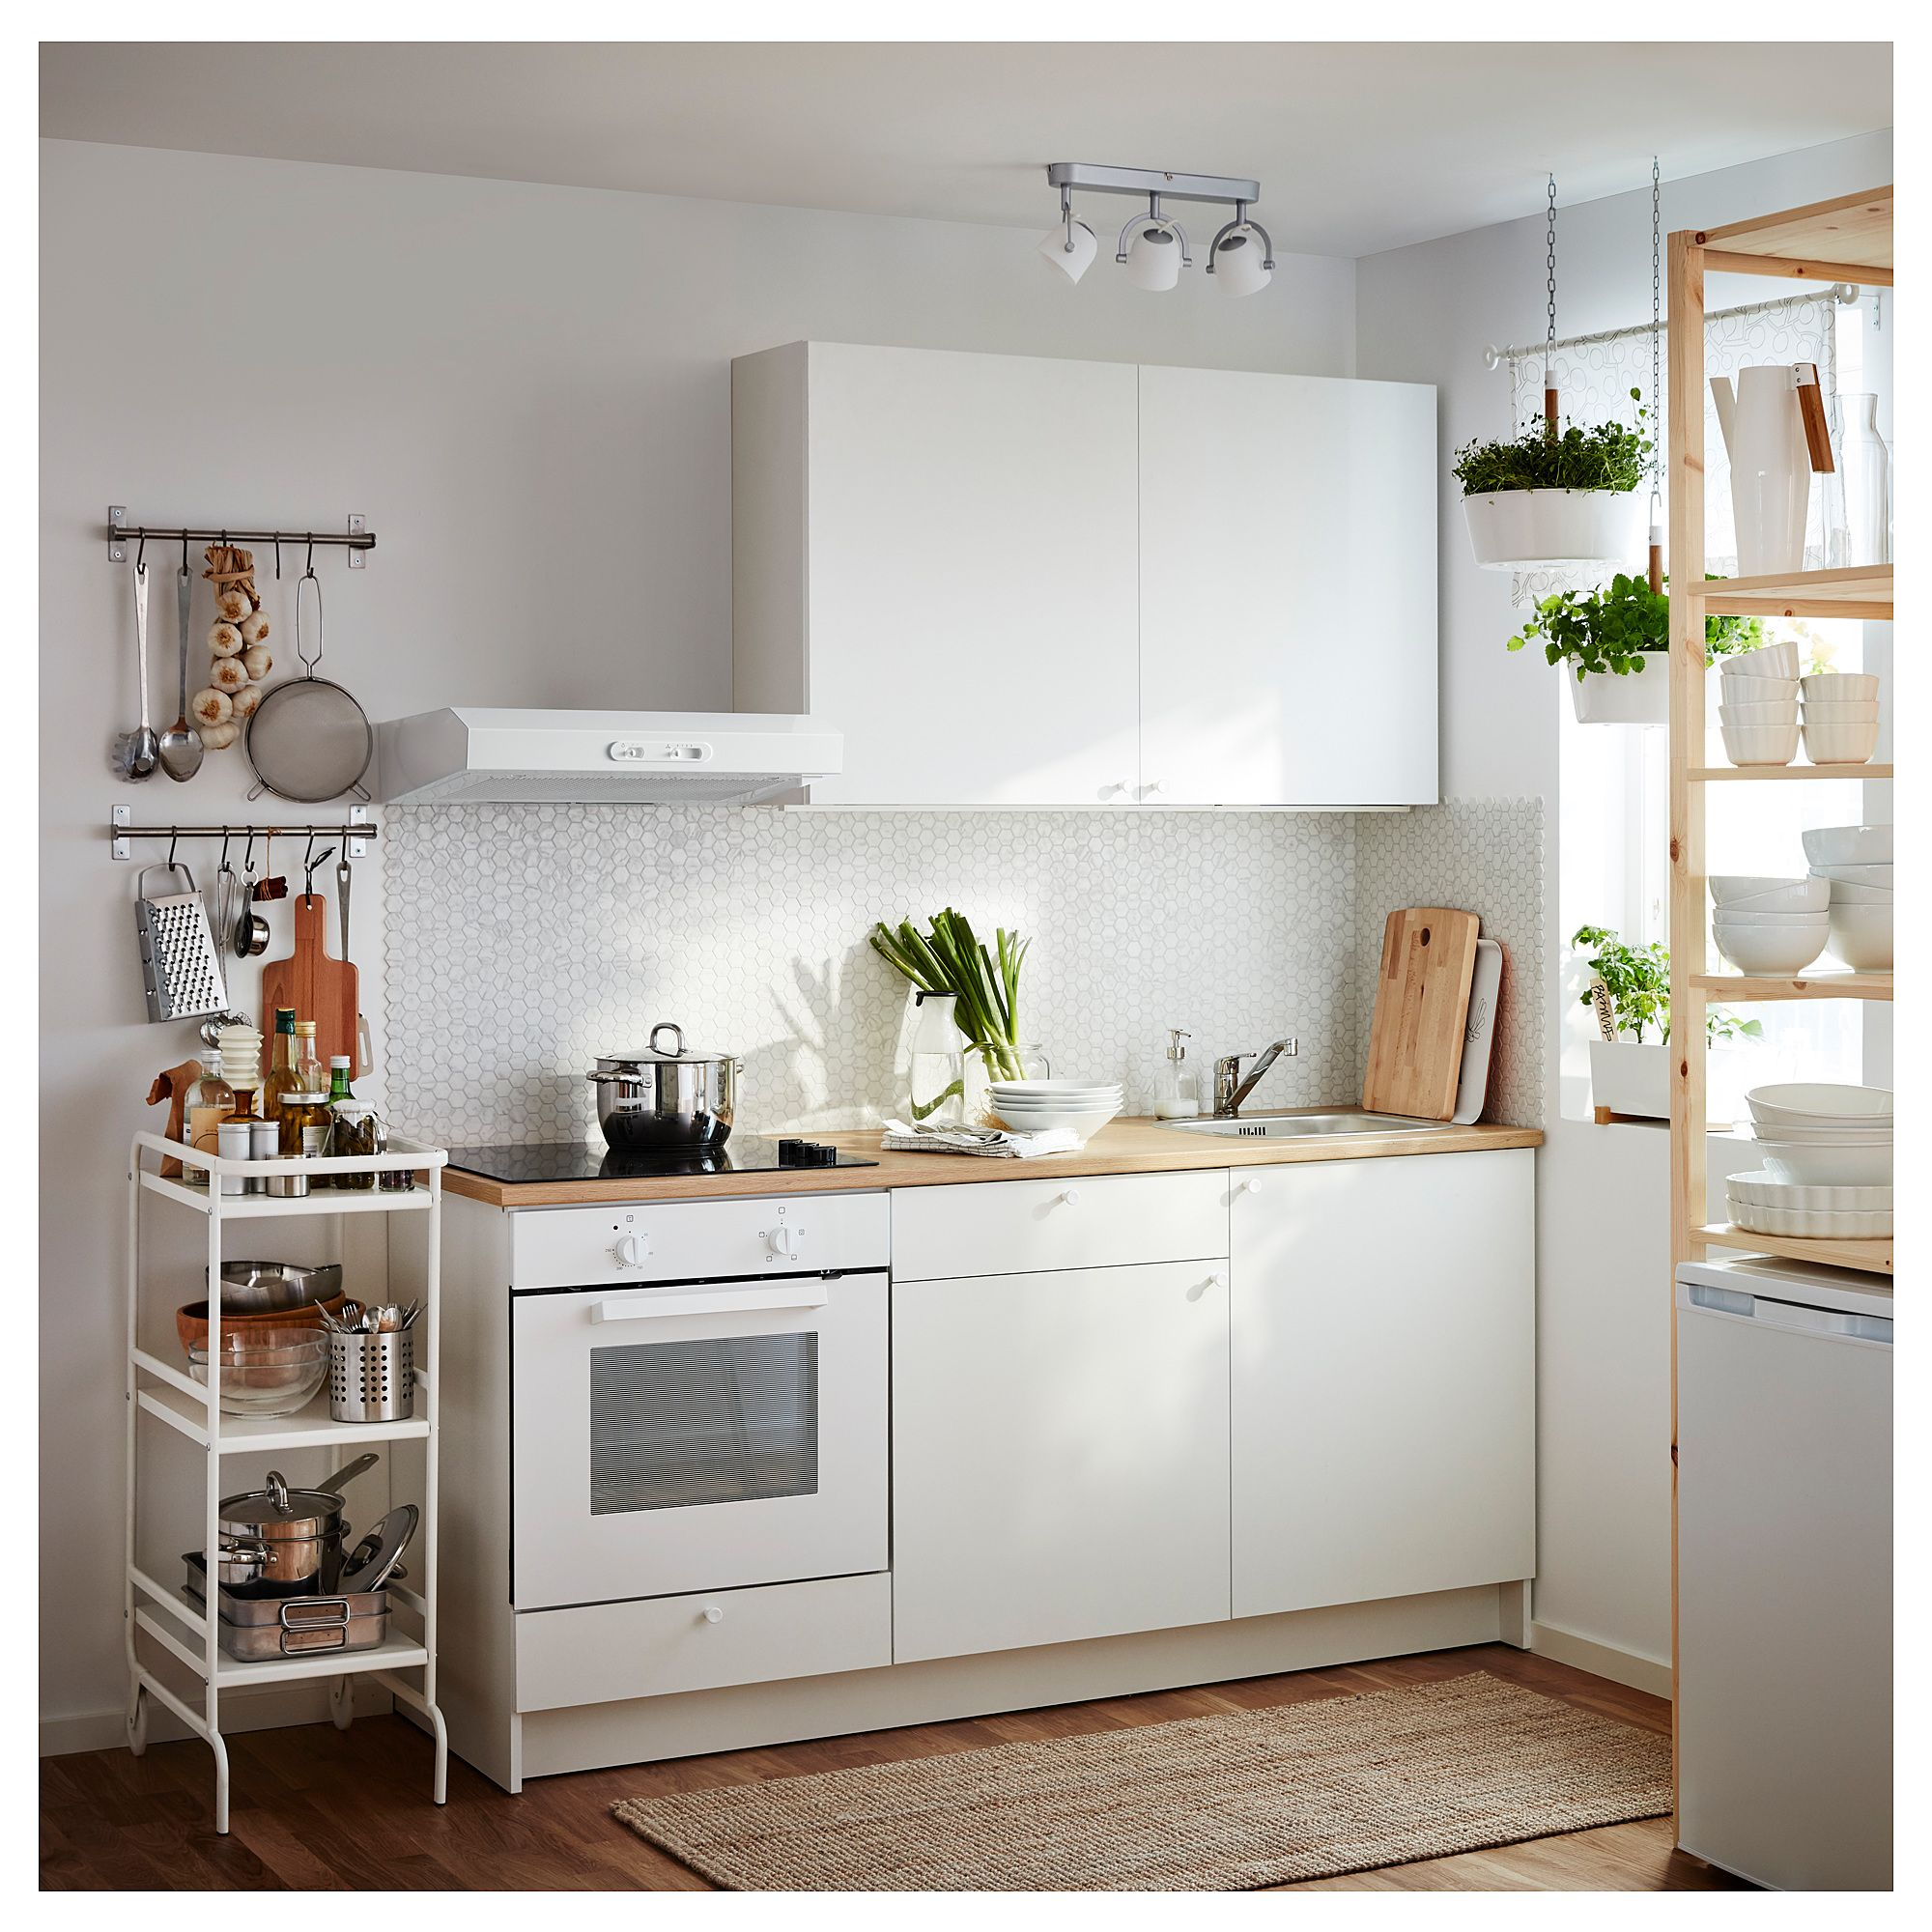 Knoxhult Base Cabinet With Doors And Drawer White 48x24x36 121 9x61 0x91 4 Cm Ikea Small Kitchen Small White Kitchens Kitchen Remodel Small